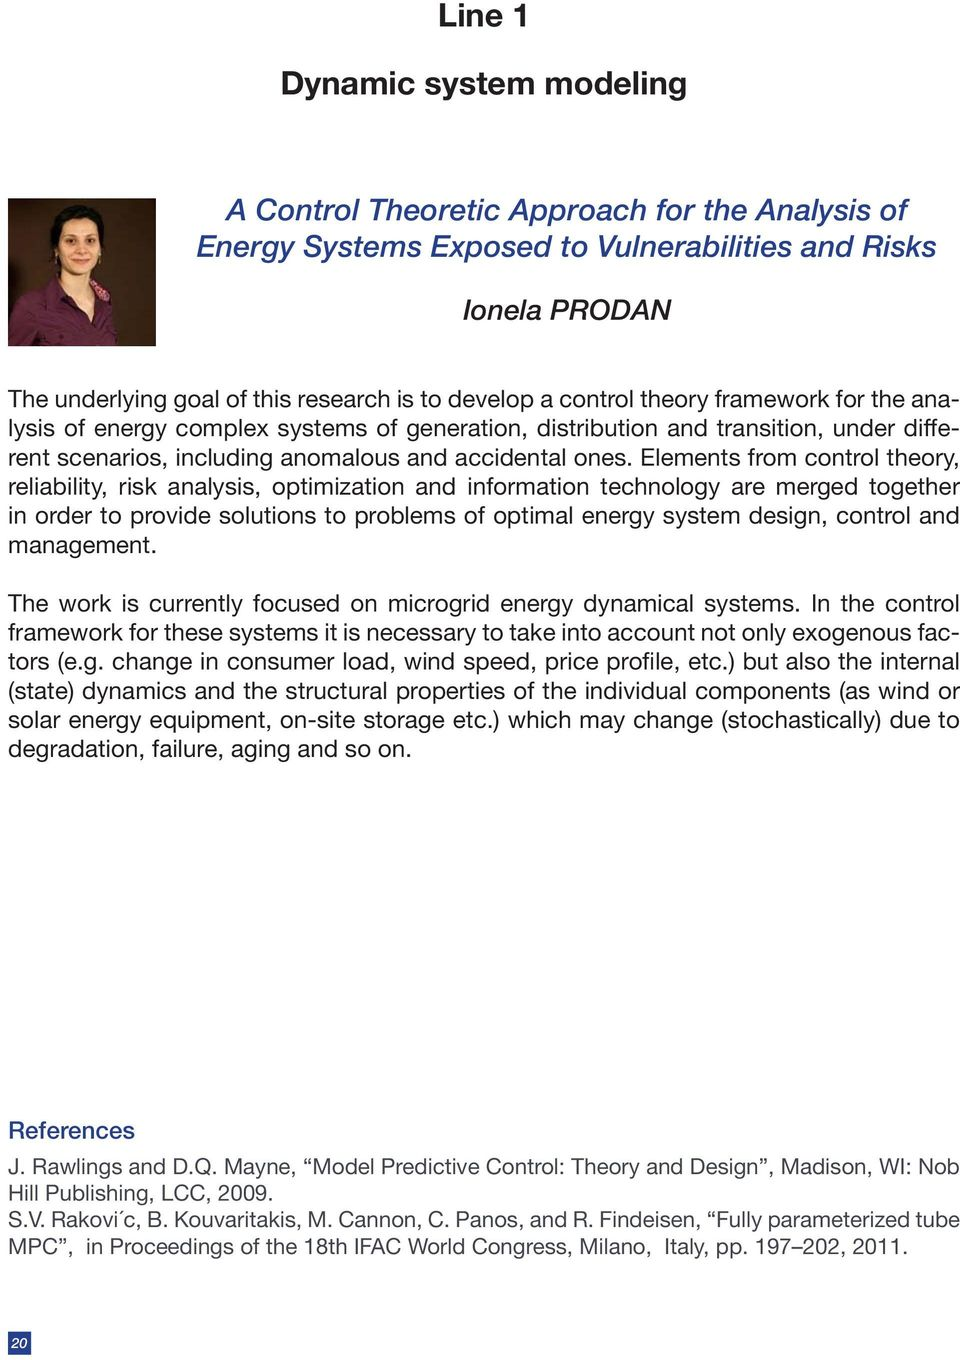 Elements from control theory, reliability, risk analysis, optimization and information technology are merged together in order to provide solutions to problems of optimal energy system design,